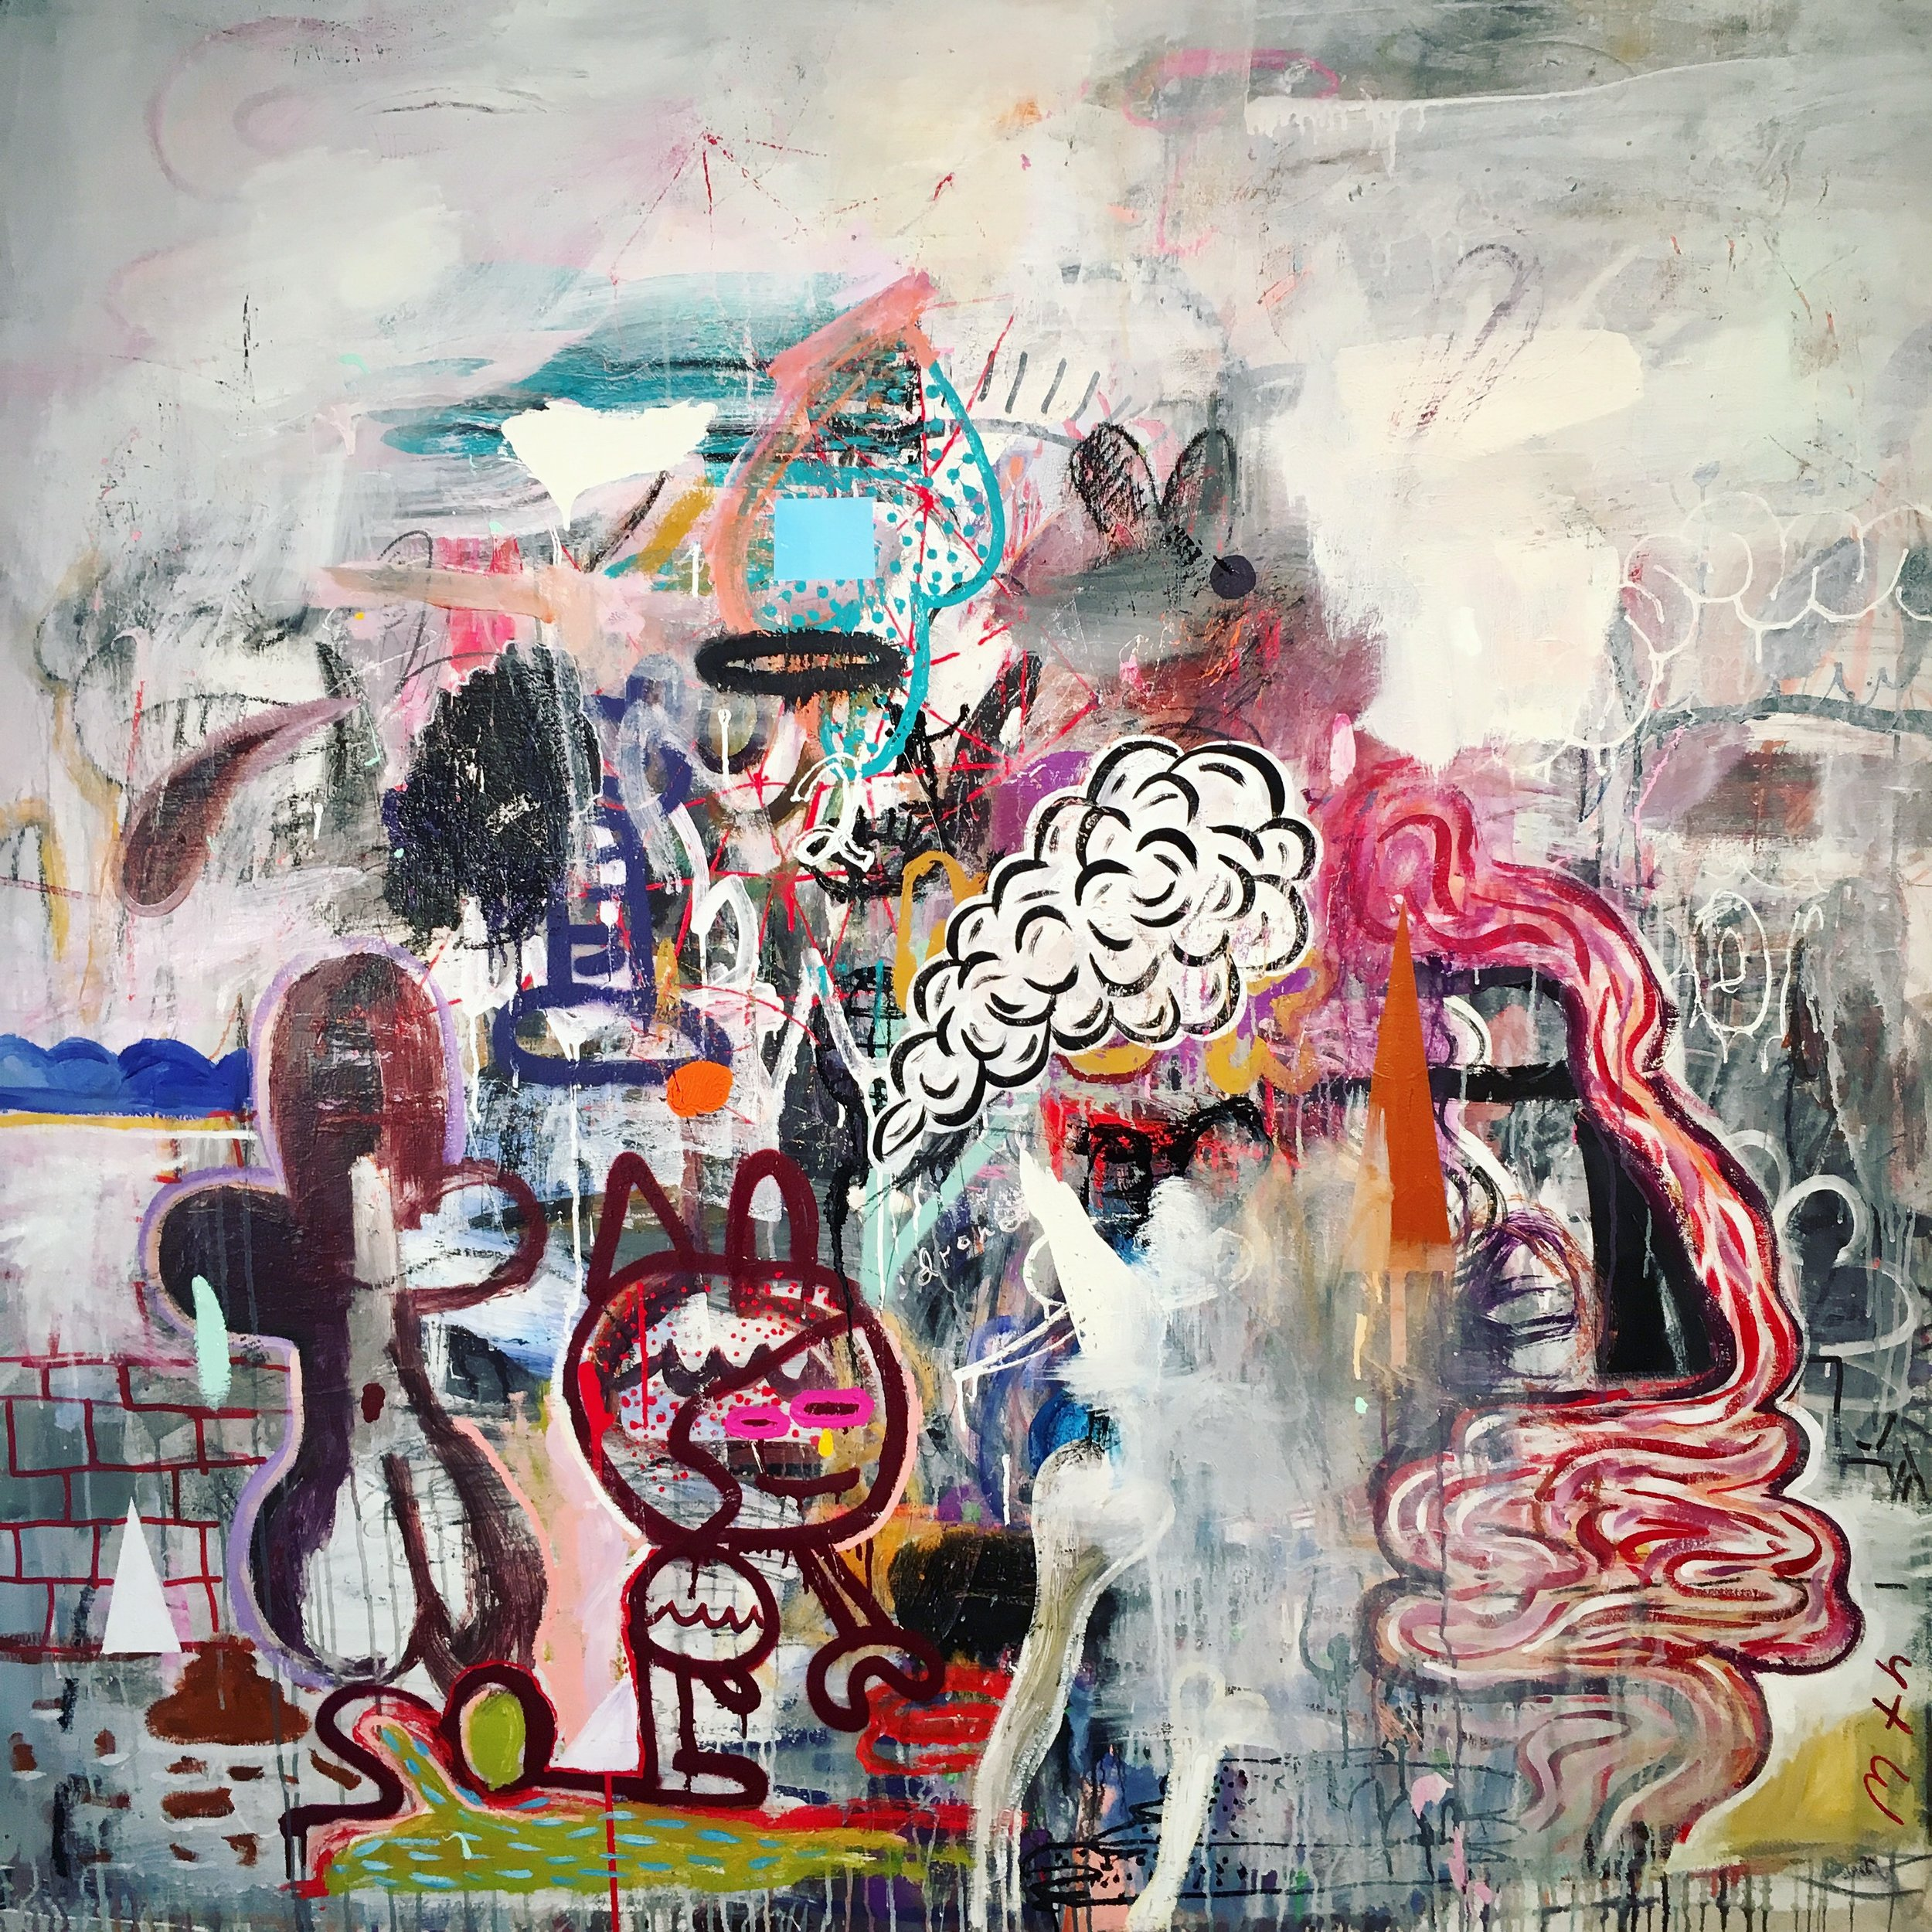 Spiller,   2018  Mixed media on canvas  60 x 60 in.